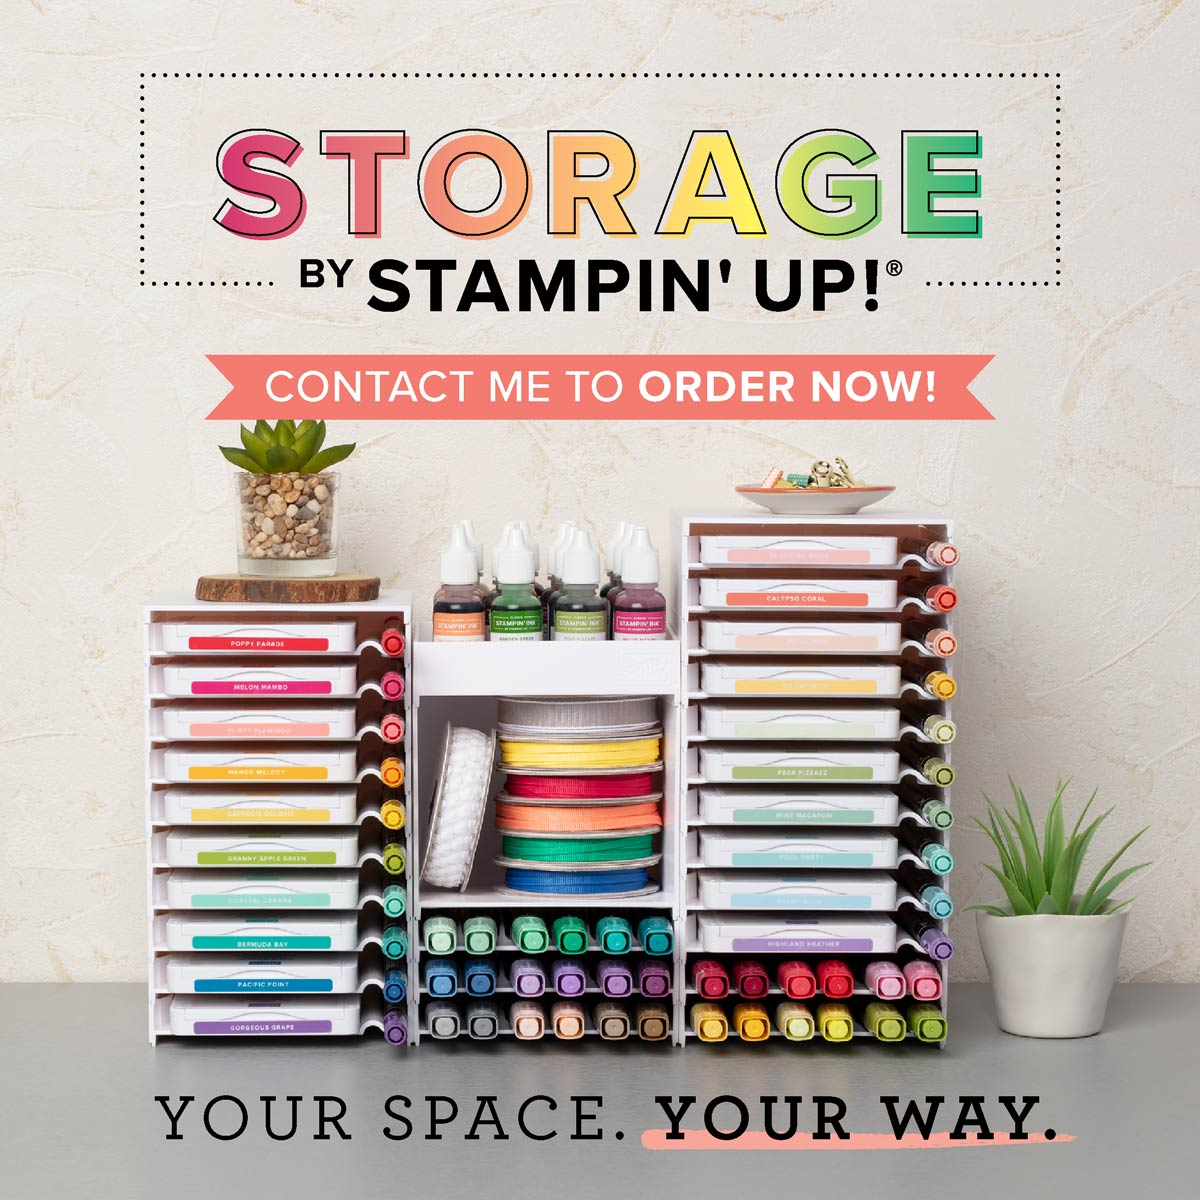 New Stampin' Storage System from Stampin' Up! details: www.thestampcamp.com #stampinup #thestampcamp #storage #stamps